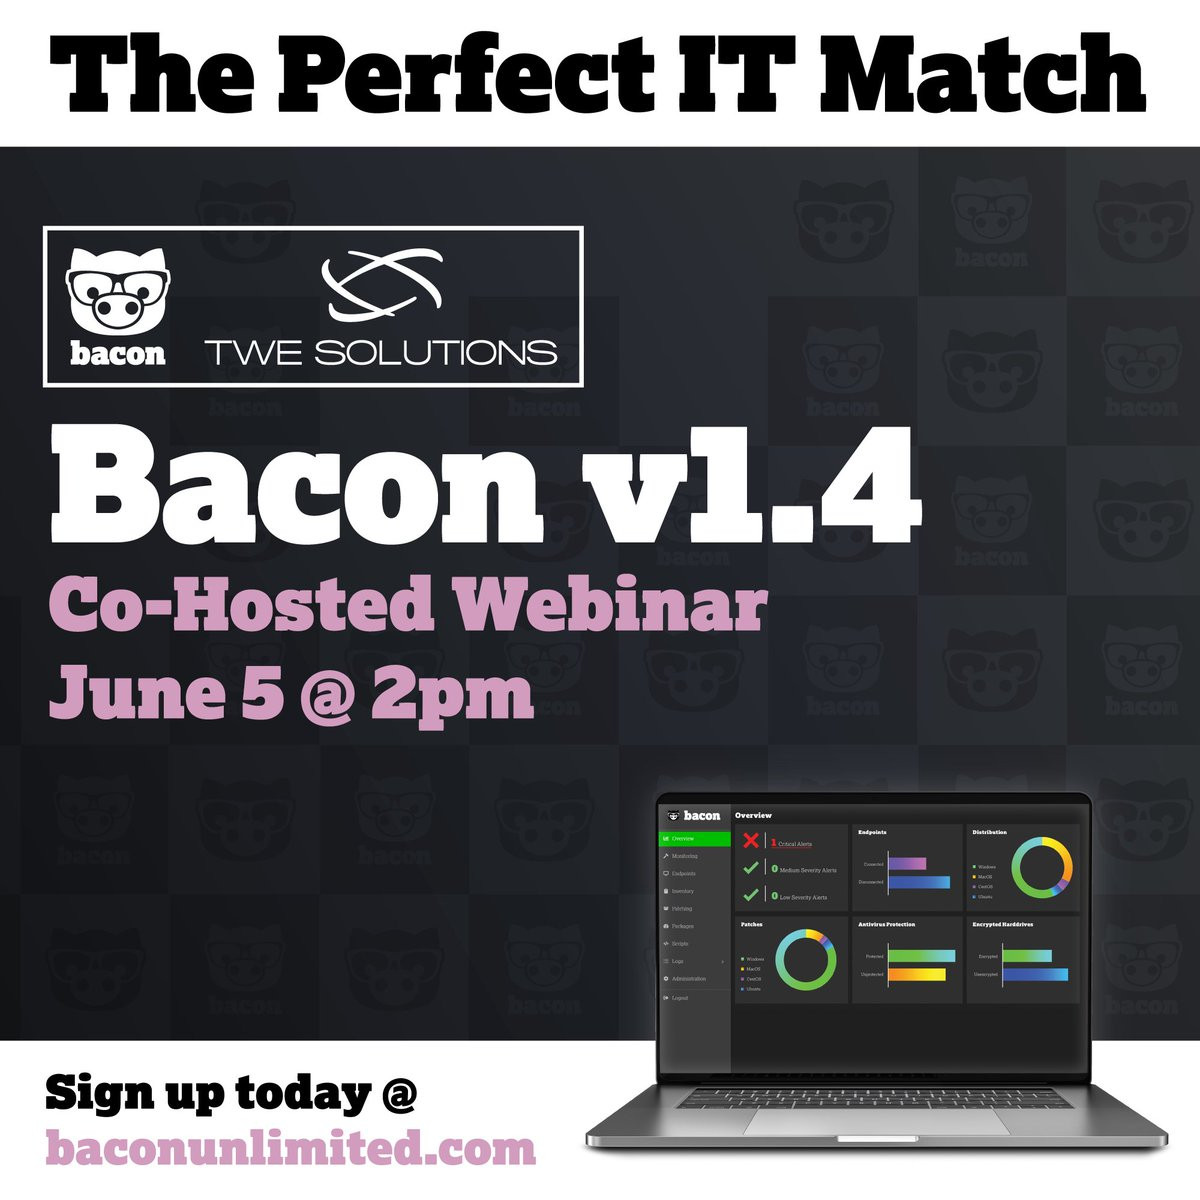 2 DAYS LEFT TO REGISTER! Join #BaconUnlimited and #TWESolutions, sign up at https://baconunlimited.com/  #baconunlimited #getbacon #bacon #itsupport #itservices #itsoftware #tech #newtech #technology #software #windows #mac #linux #webinar #gotowebinar #freewebinarpic.twitter.com/GjTDw3TGIW